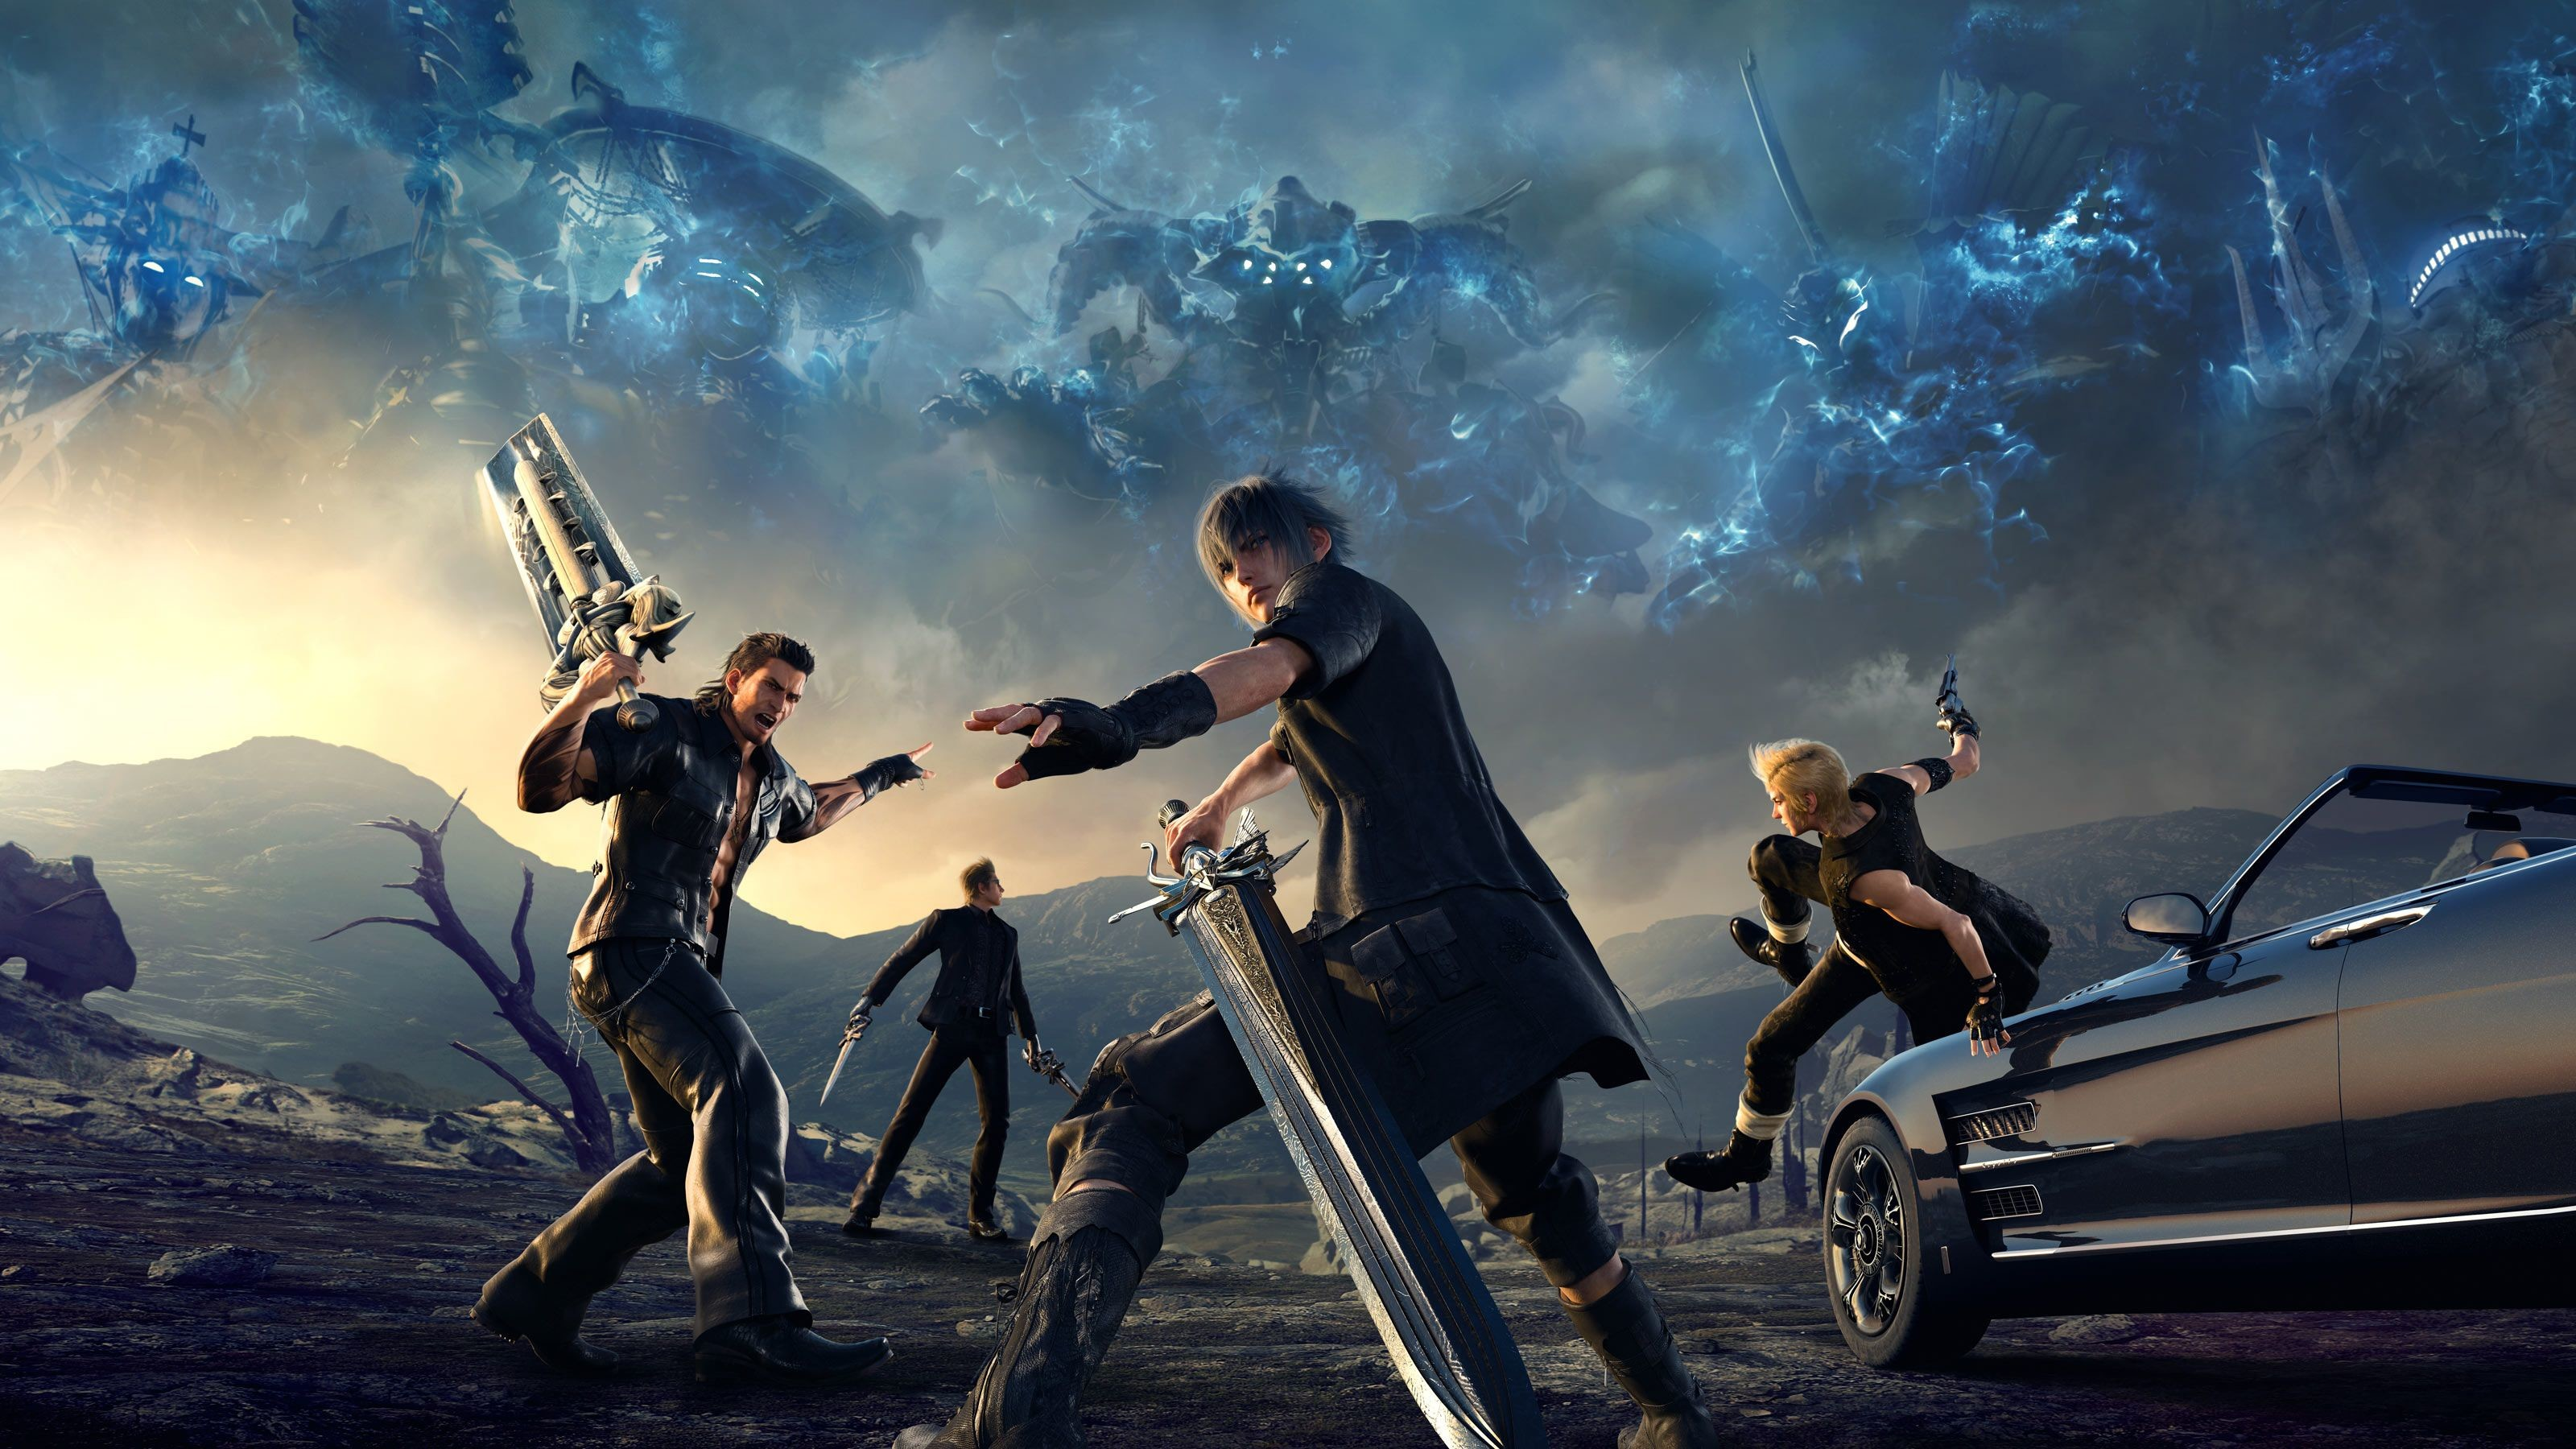 3200x1800 Final Fantasy XV Coming to Mobile and PC - https://www.gizorama